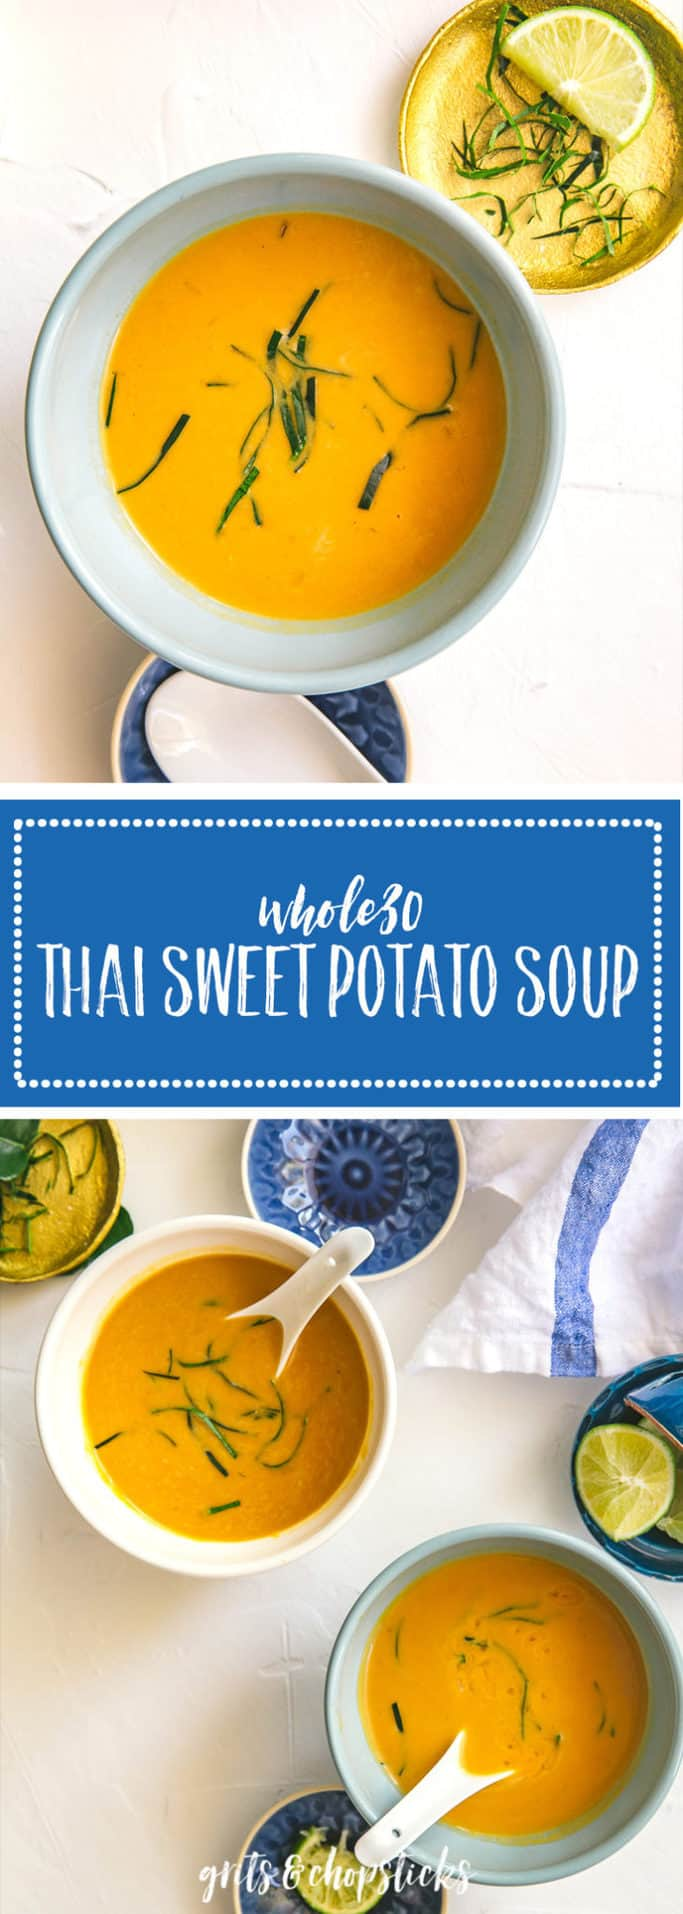 This Whole30/paleo Thai sweet potato soup is a great way to ease into healthier eating. Try it as a part of your dinner for a warm, comforting meal.